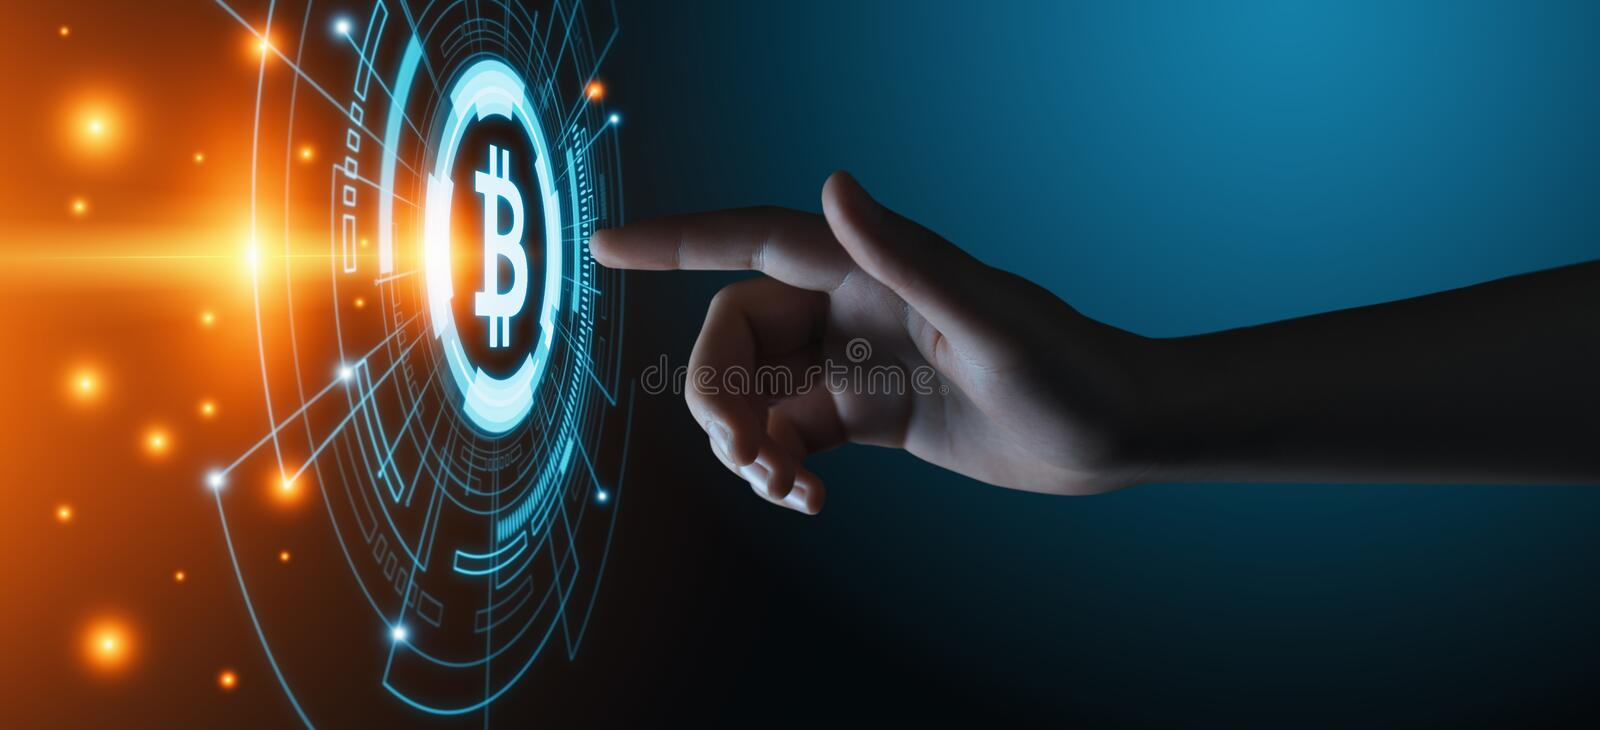 Bitcoin Cryptocurrency Digital Bit Coin BTC Currency Technology Business Internet Concept stock image